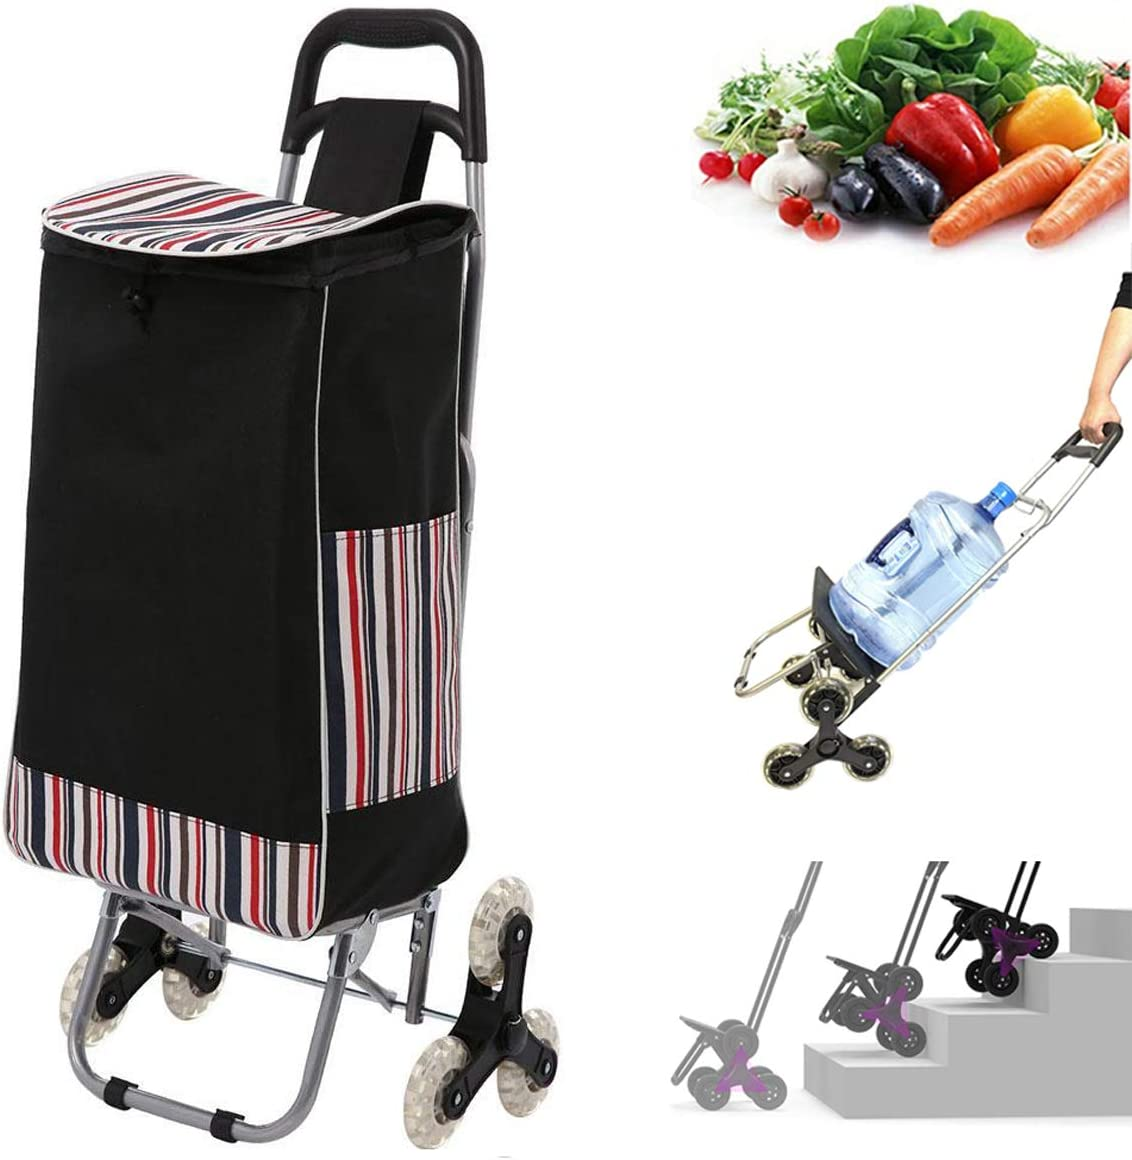 Folding Shopping Cart, Stair Climber Cart with Wheels, Foldable Compact Grocery Pull-Cart, Utility Cart Hand Truck, Waterproof Lightweight for Easy Storage